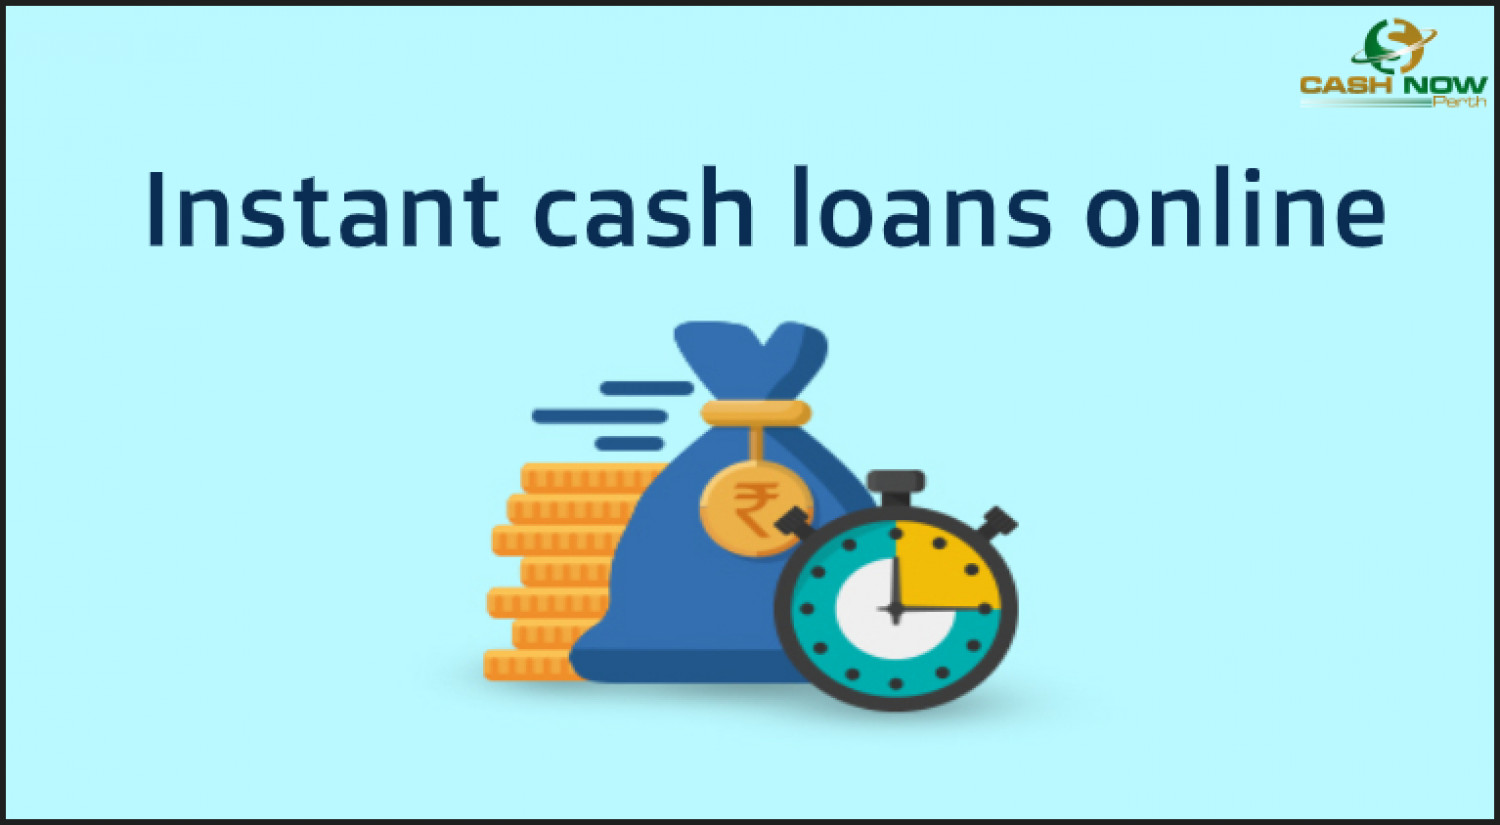 Instant cash loans online - Keeps You Away From Urgent Mid-Month Crisis Infographic